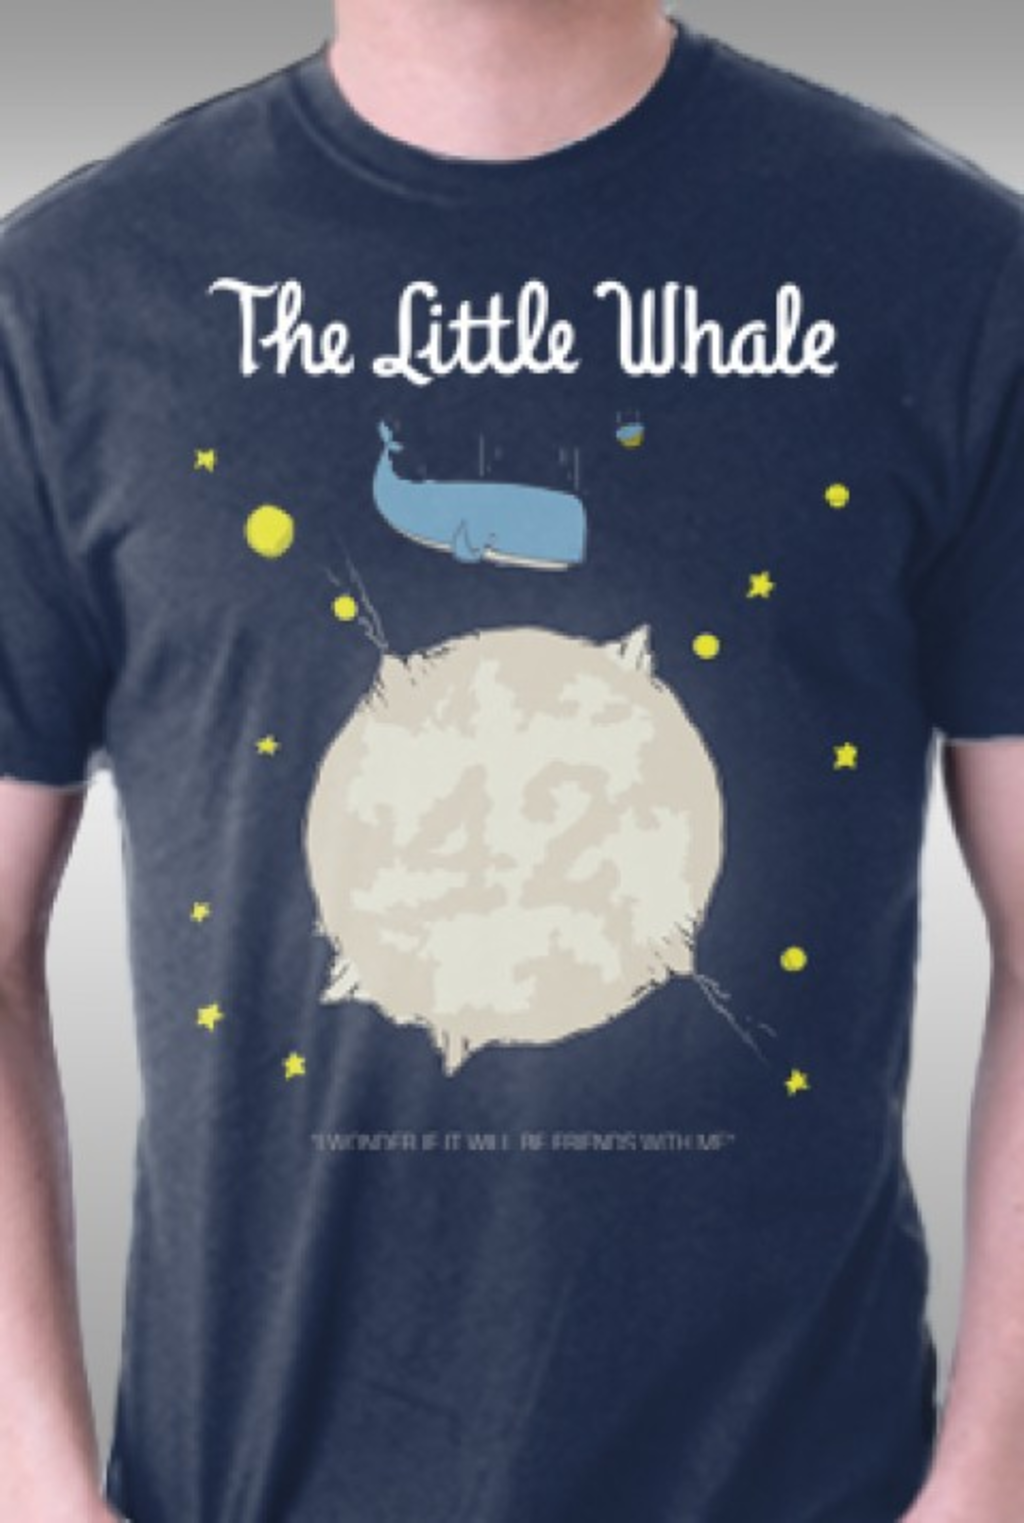 TeeFury: The Little Whale